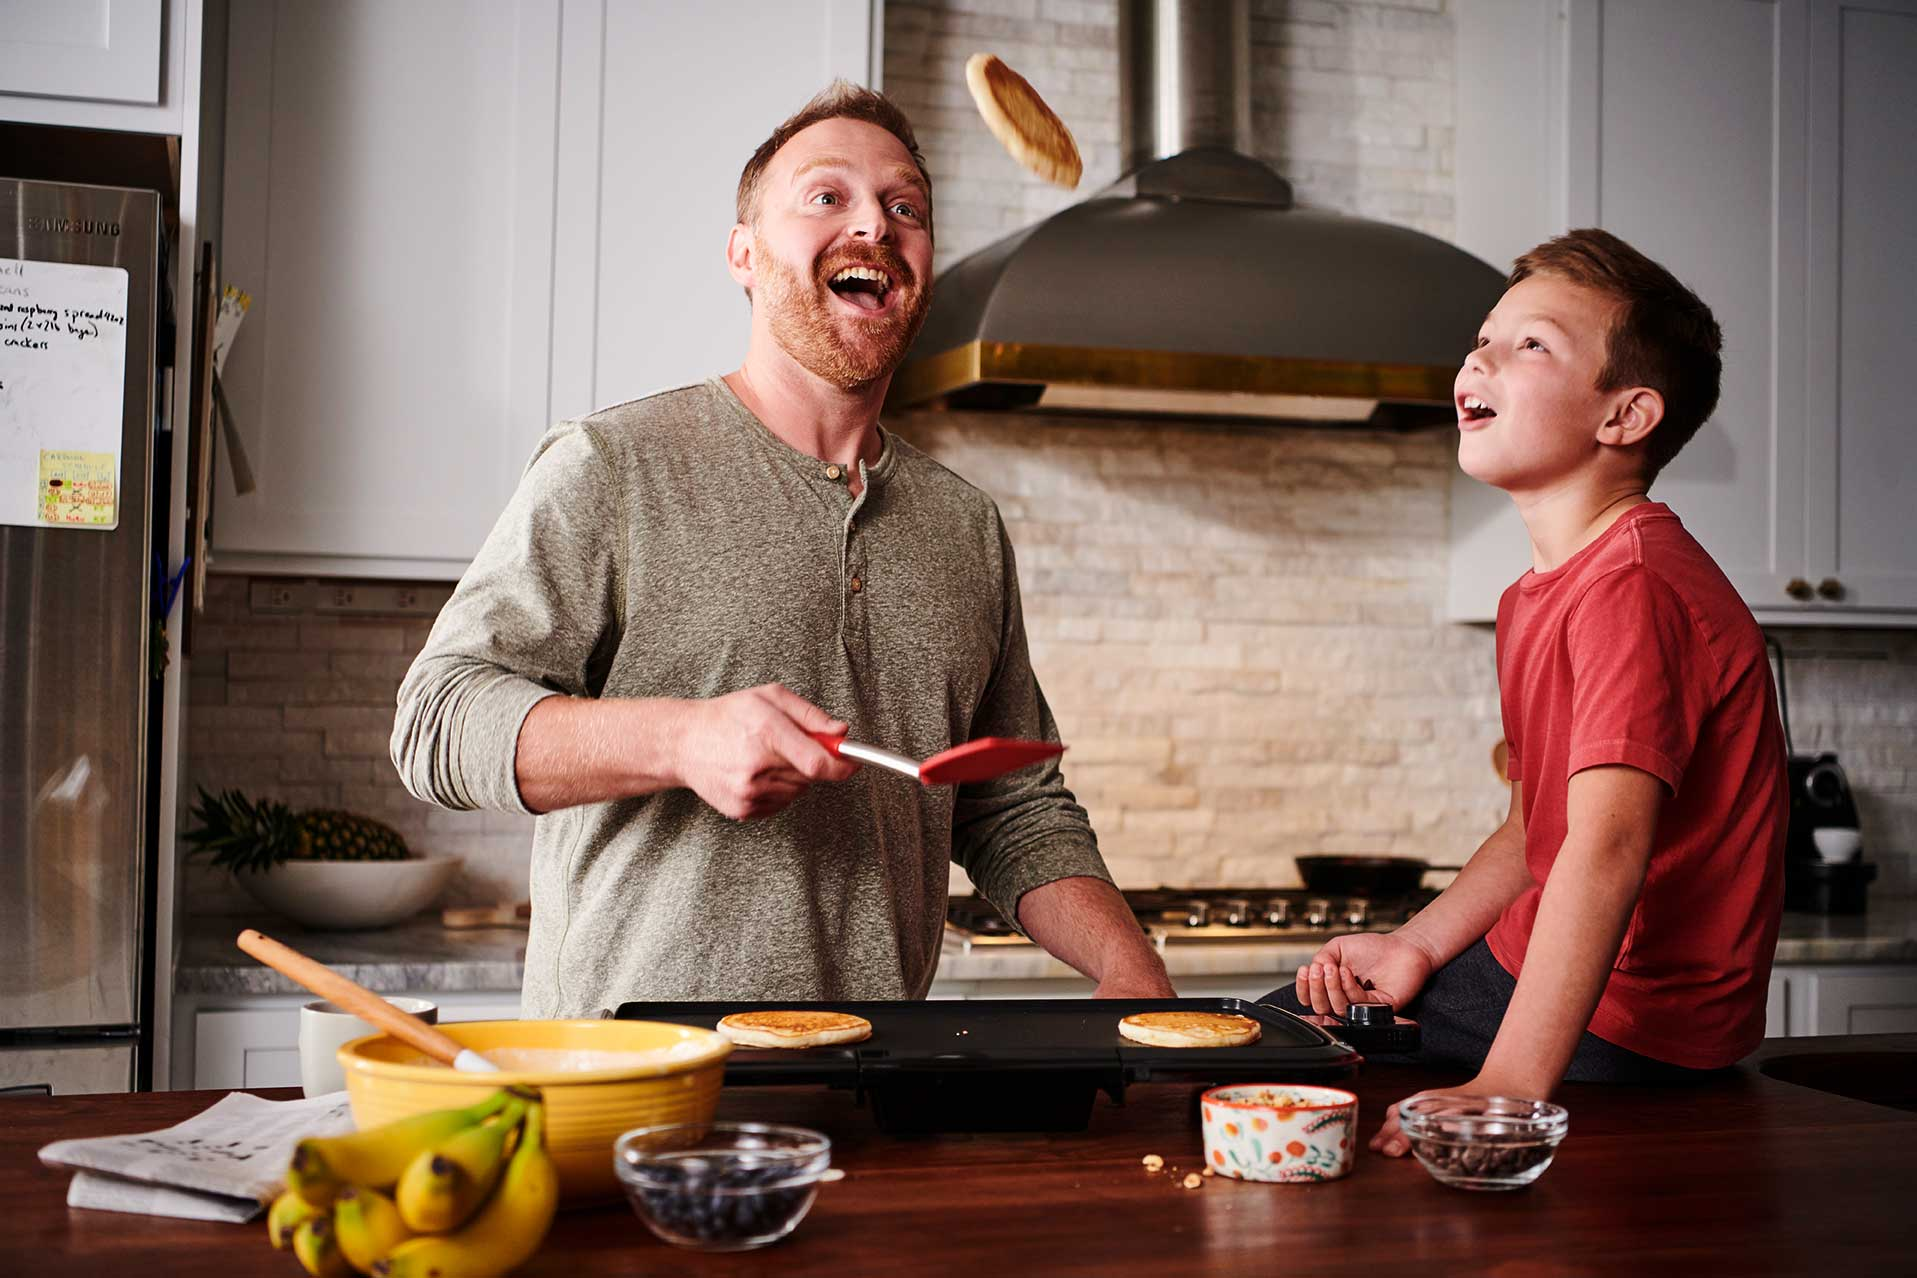 A father flips a pancake while his son watches with awe.